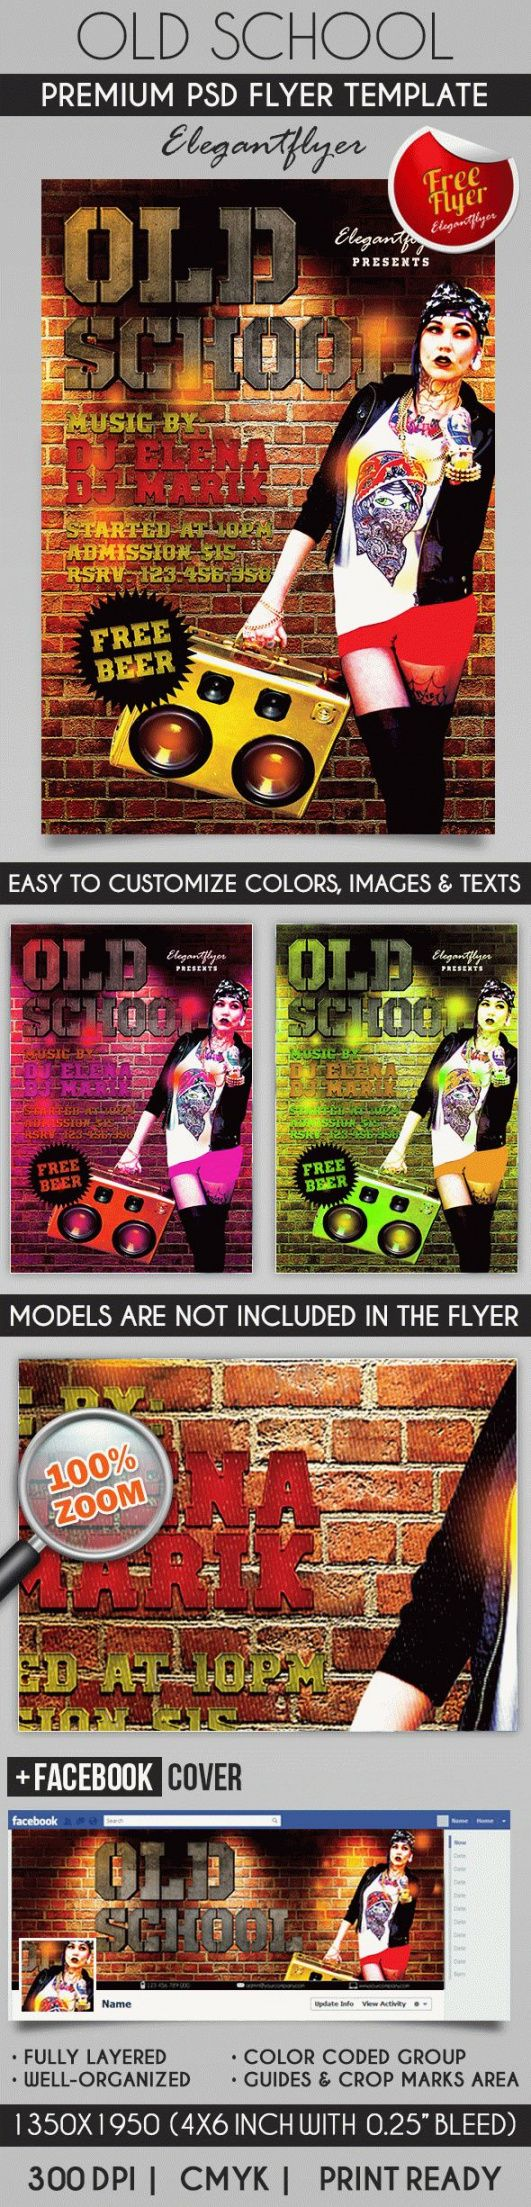 80´s old school  flyer psd template  by elegantflyer old school flyer template